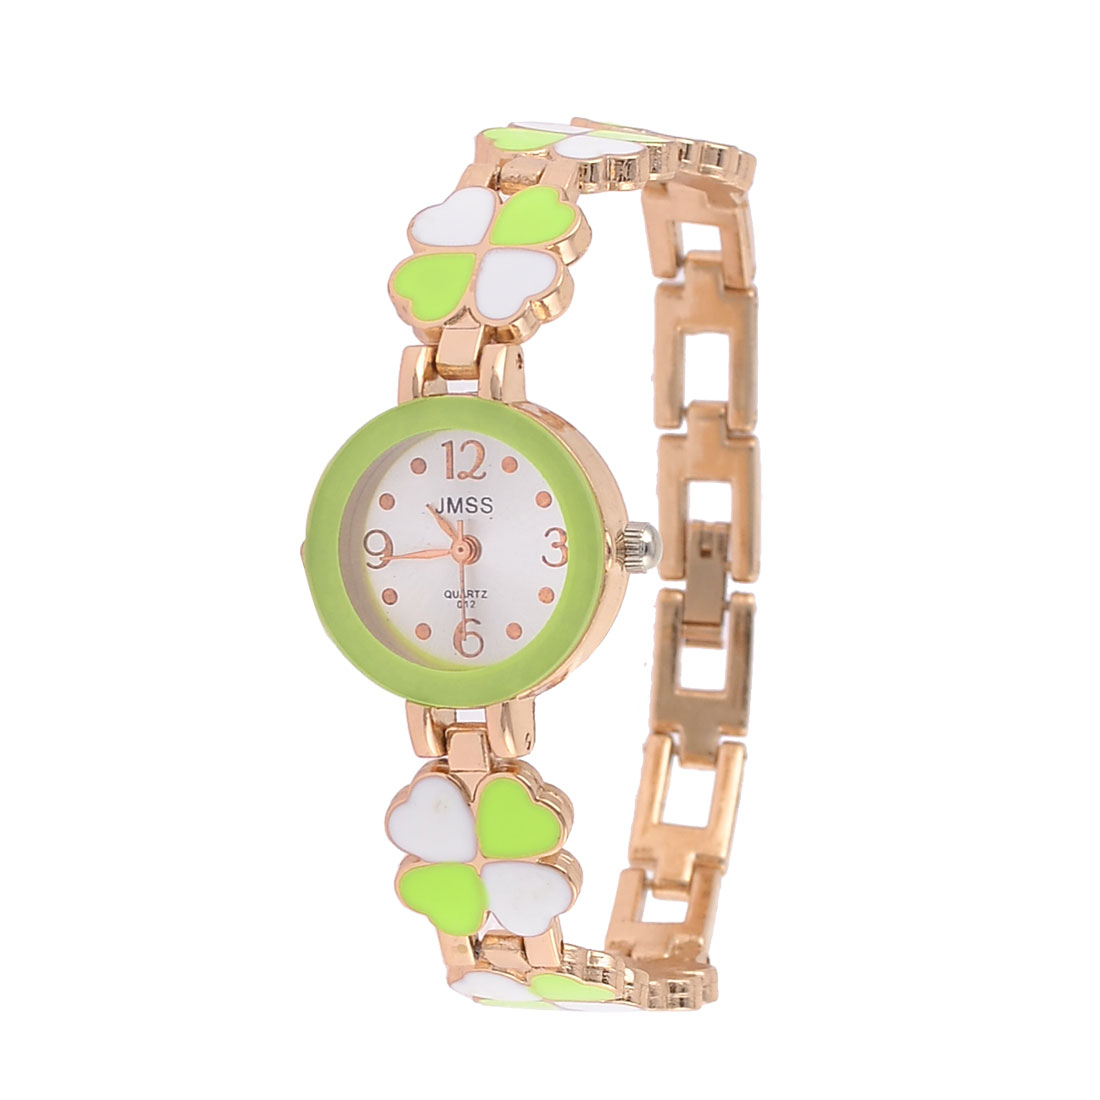 Ladies Clover Detail Band Round Dial Quartz Wrist Watch Yellow Green White